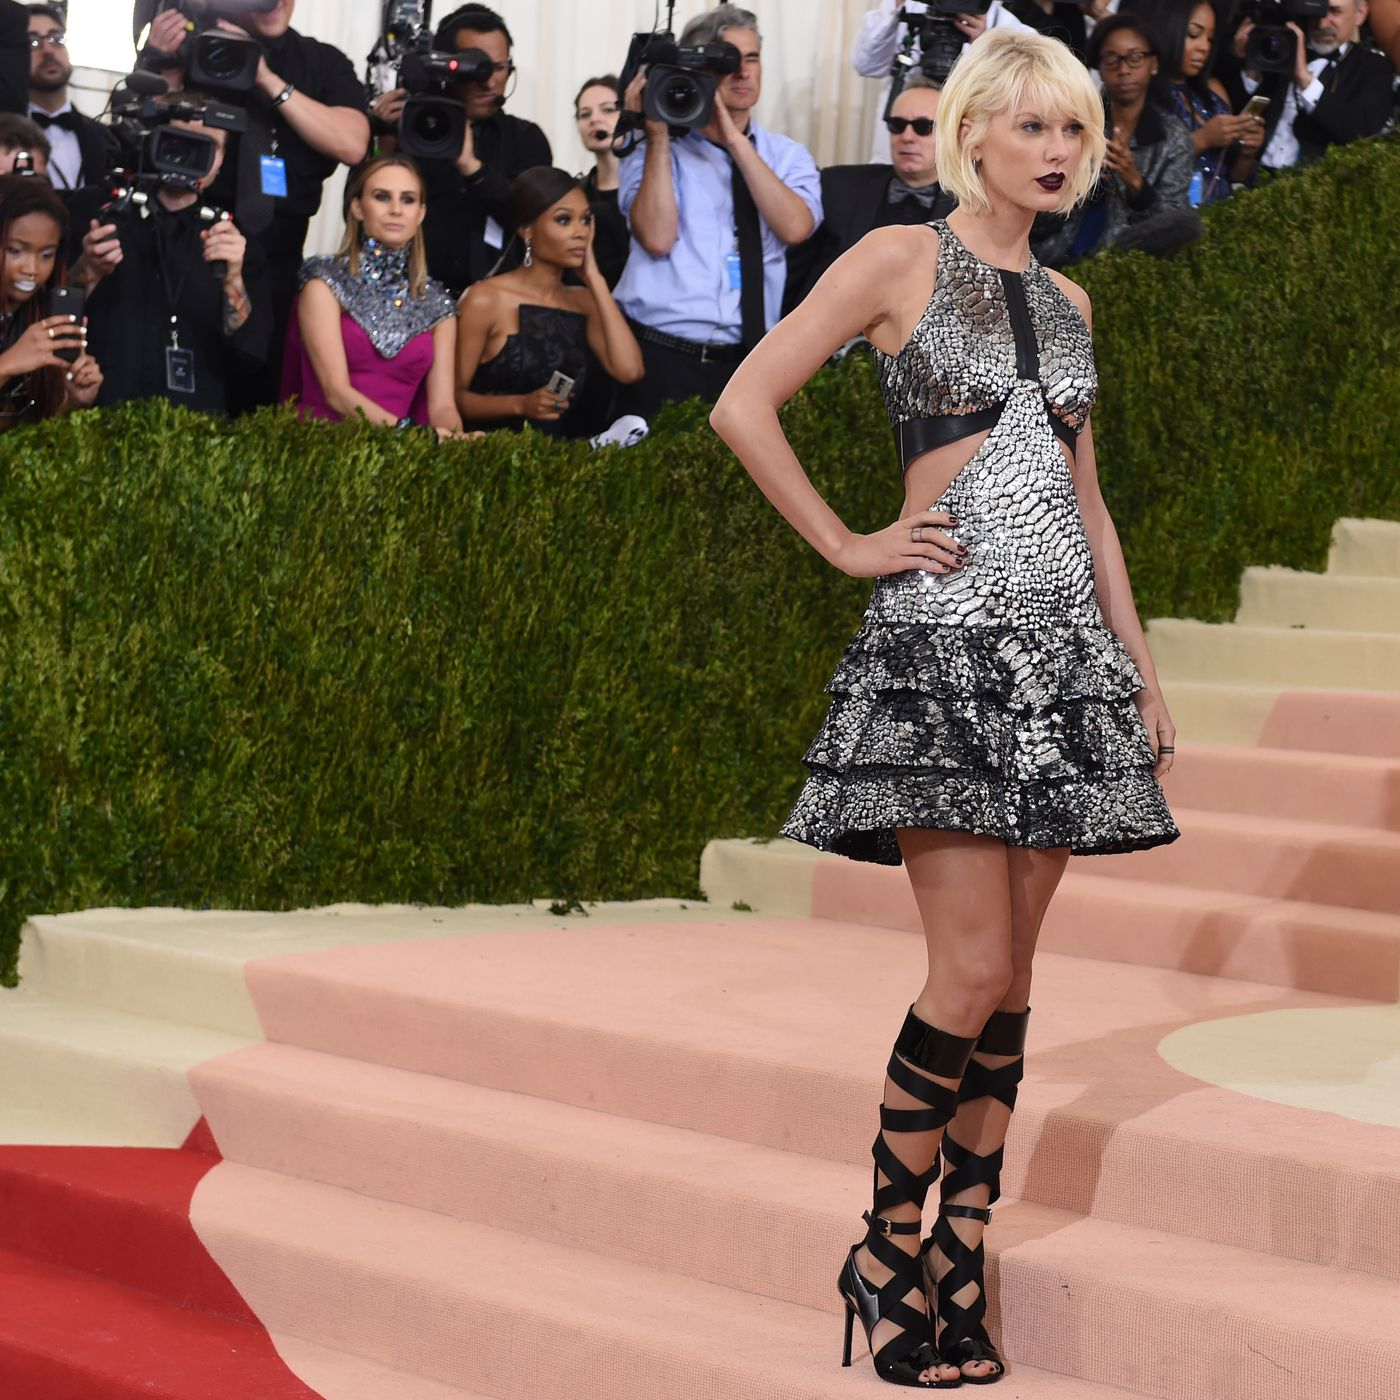 27585dc7fa8a5 Met Gala Red Carpet: Every Look from the Biggest Night in Fashion - Racked